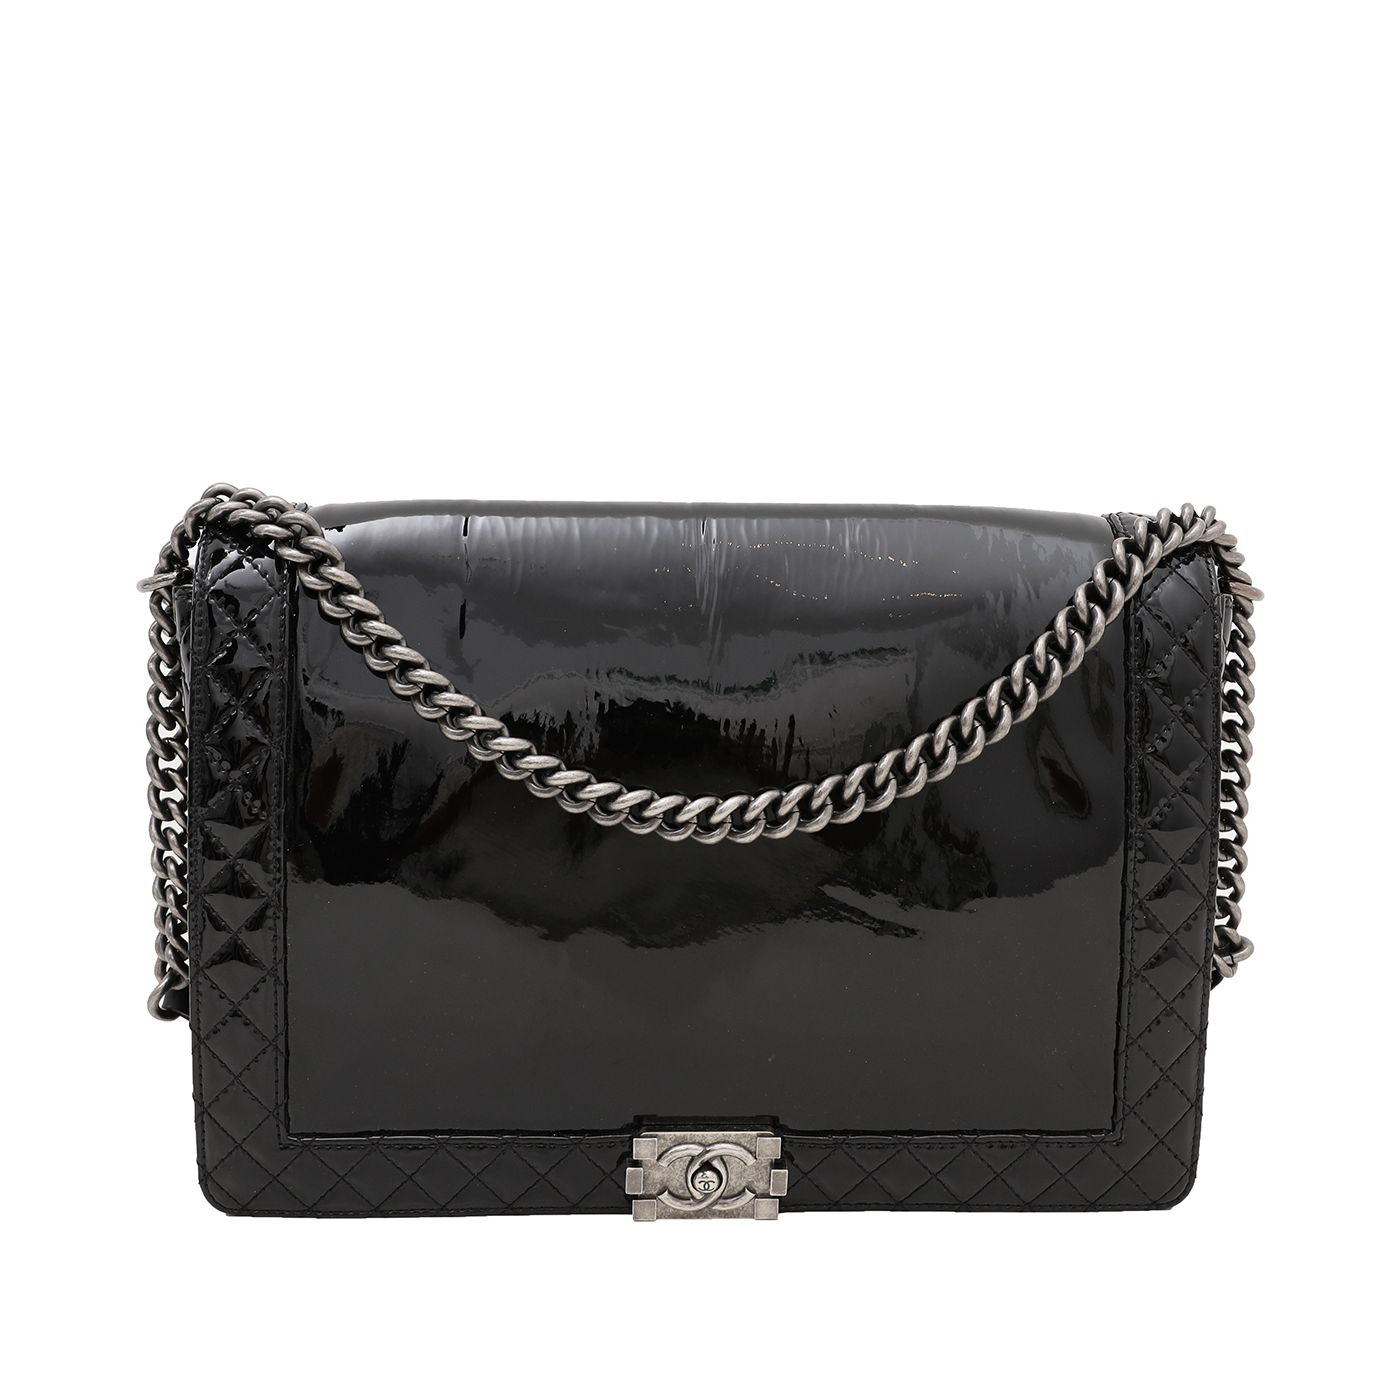 Chanel Black Le Boy Bag XL